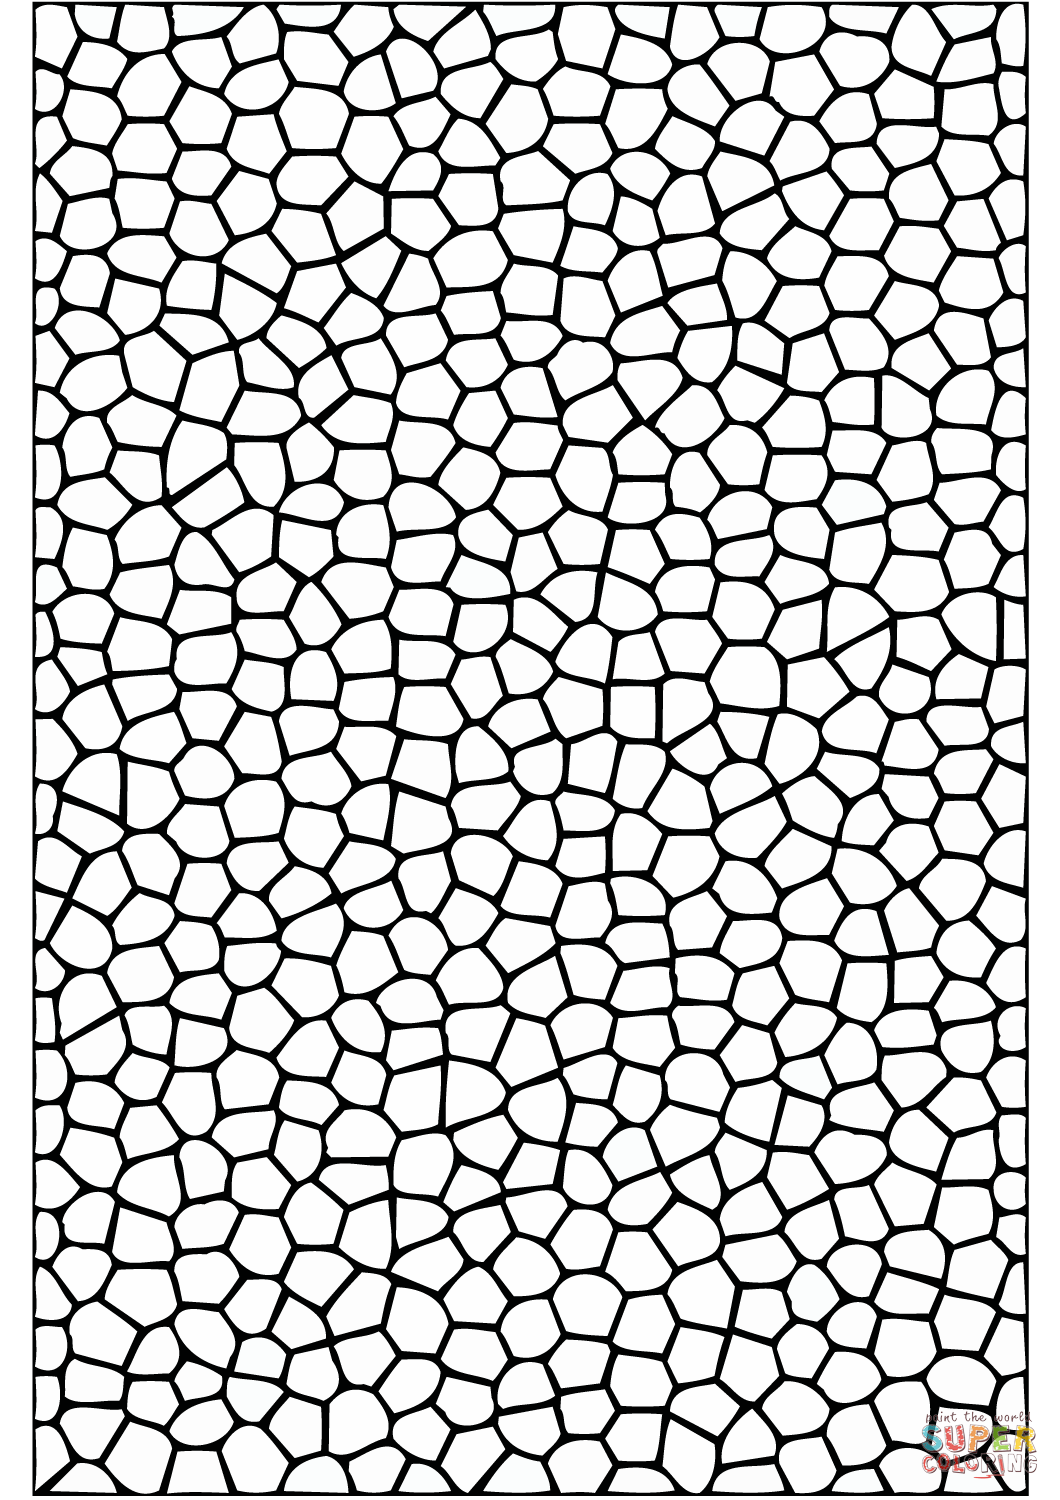 Mosaic Tiles Pattern Coloring Page